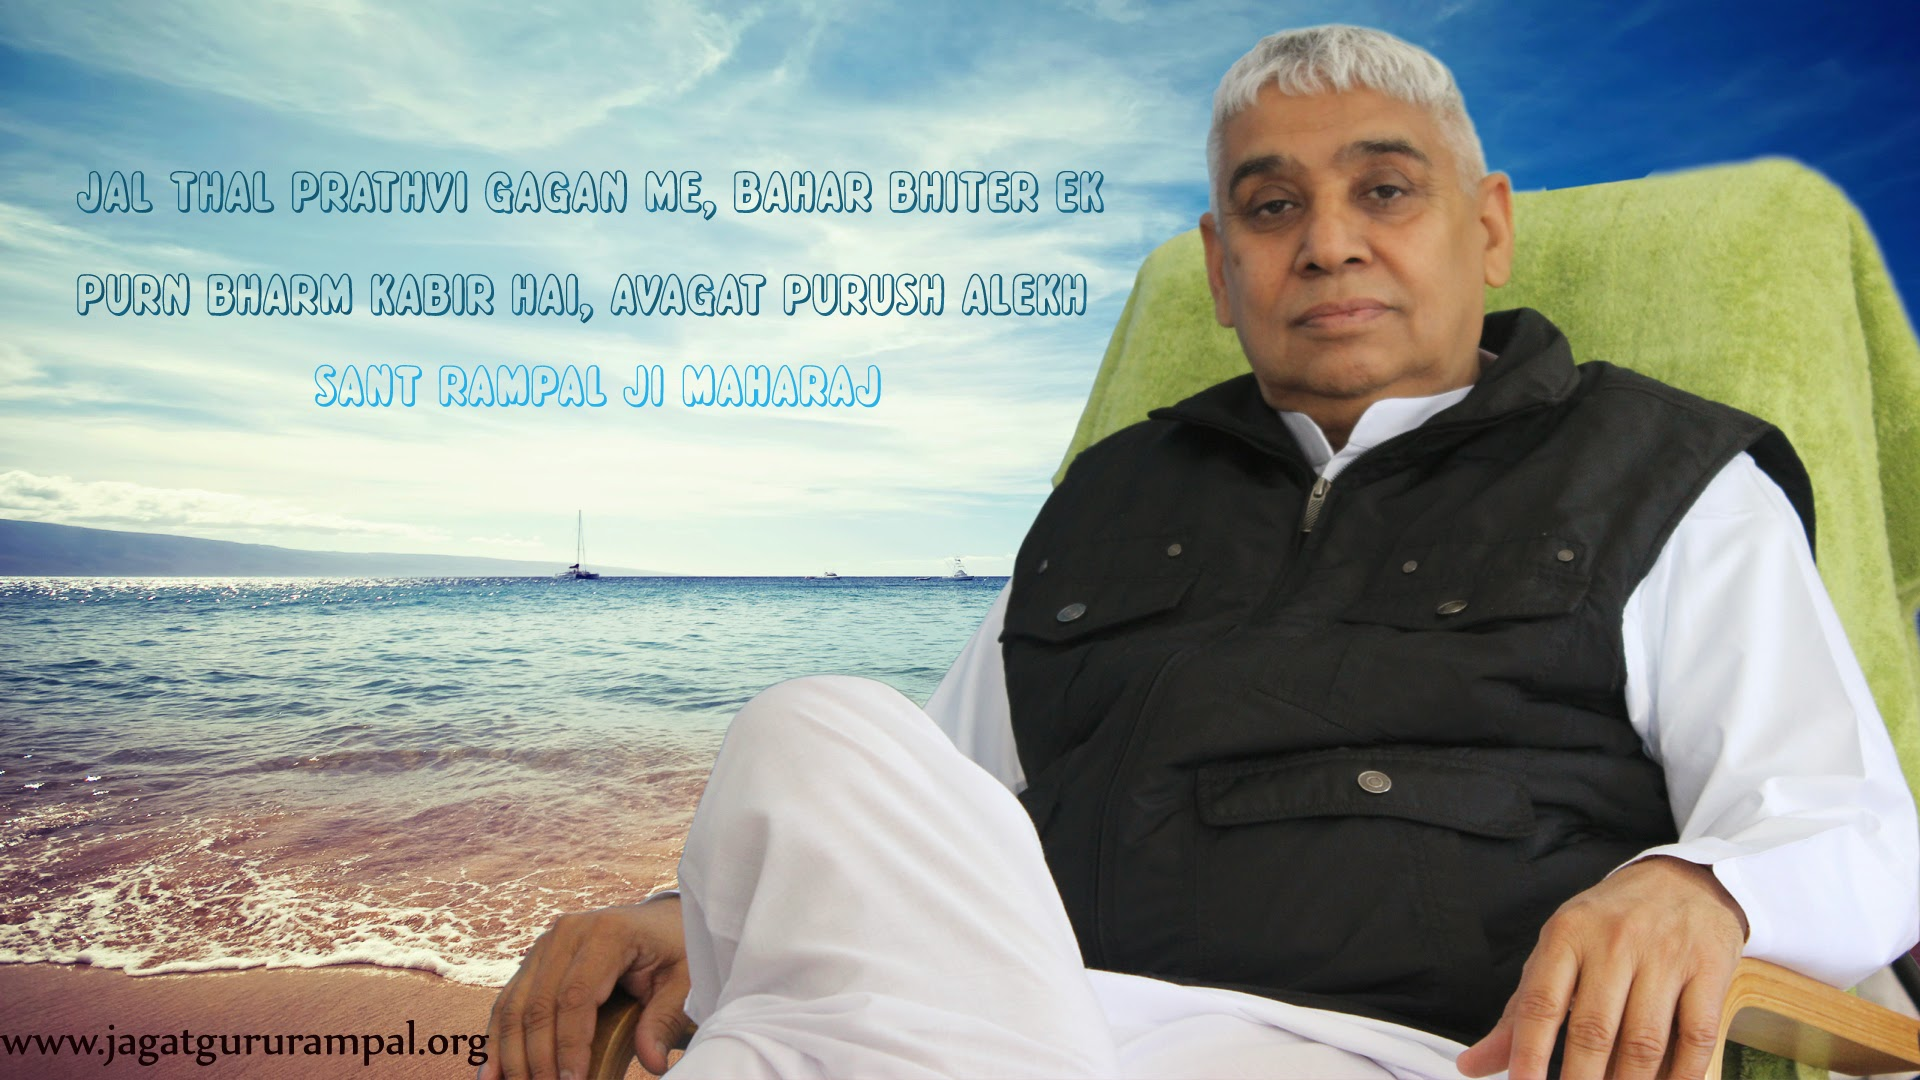 What is Controversial about Sant Rampal Ji Maharaj?